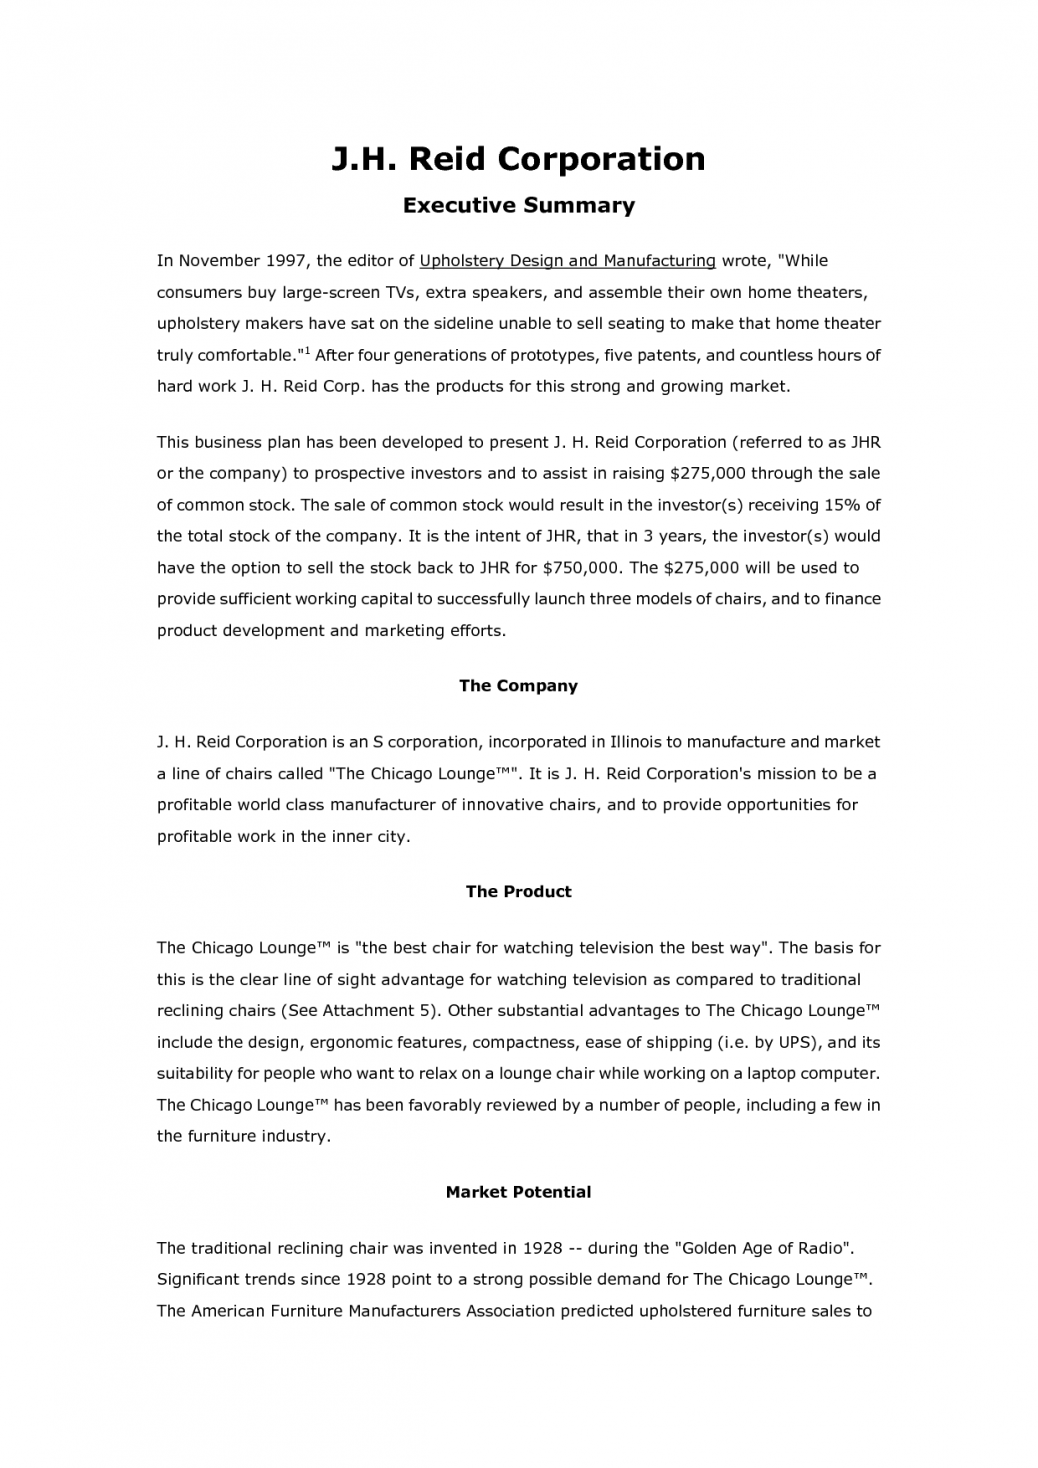 How To Make A Thesis Statement For An Essay  Research Paper Essay also Essay On My School In English  Research Paper High School Example Of Company Background  From Thesis To Essay Writing